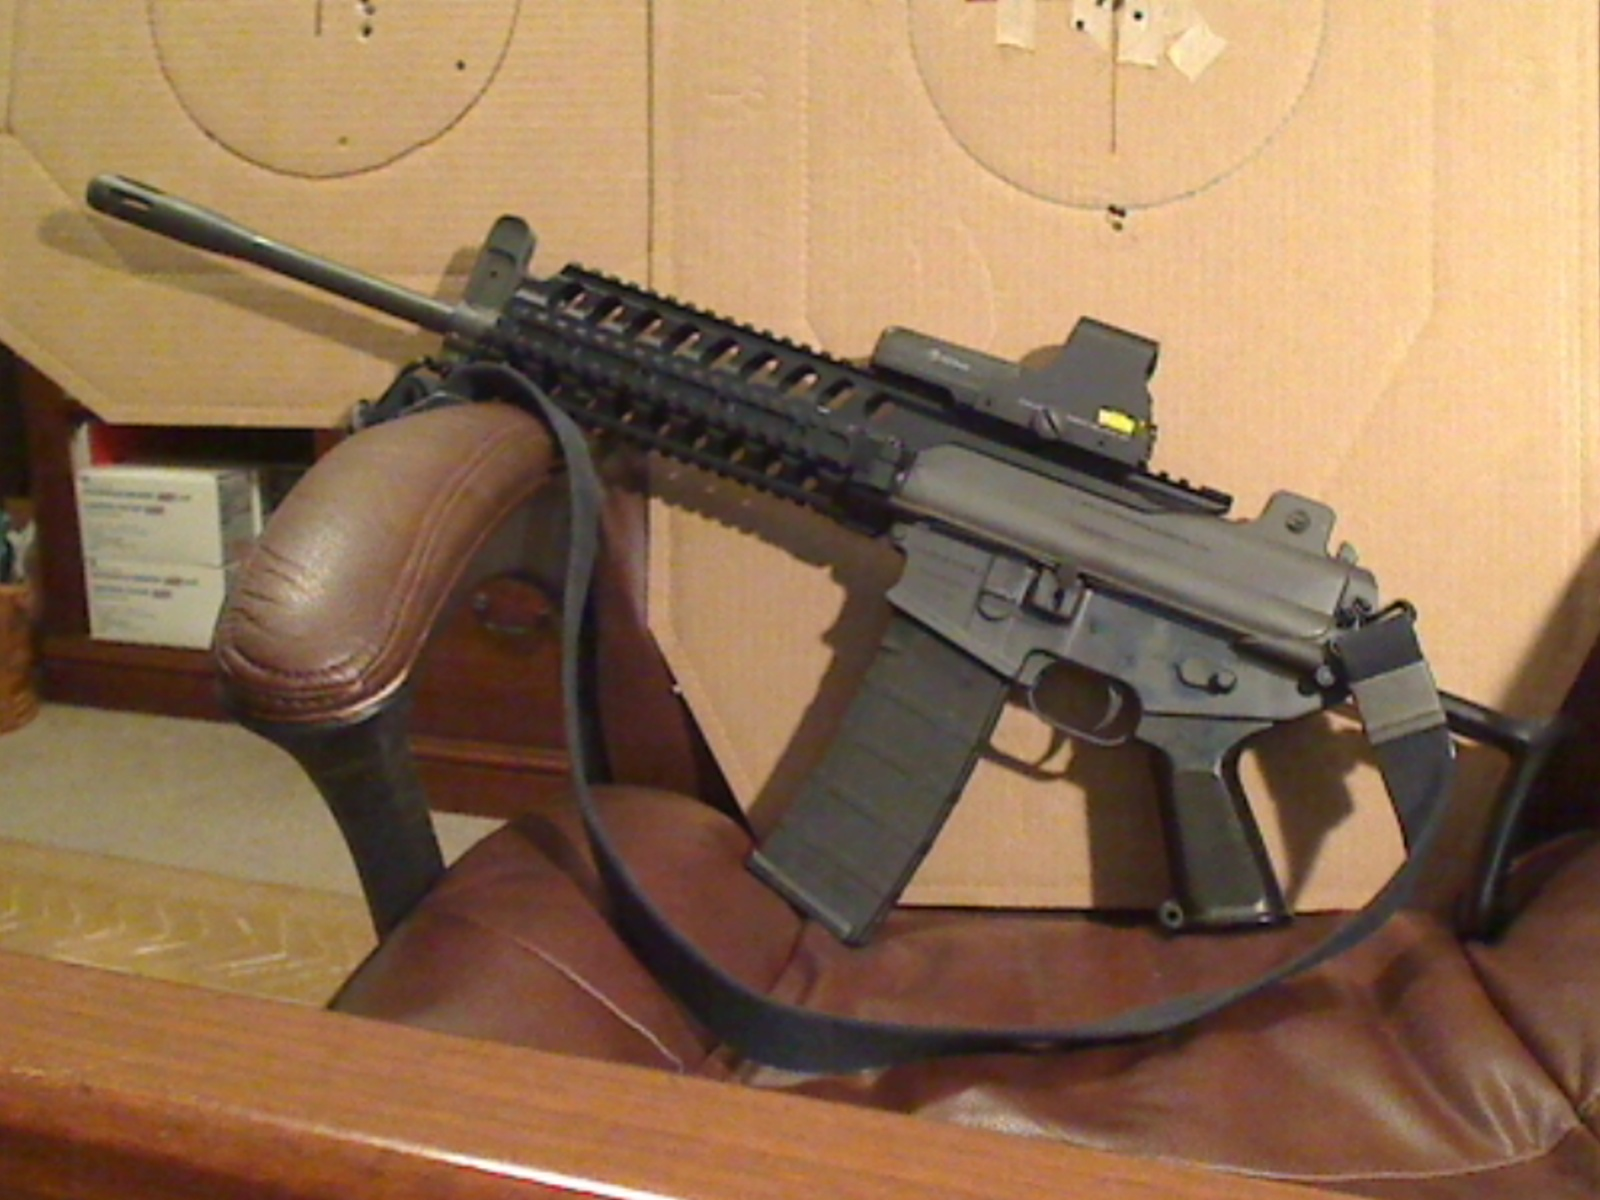 Daewoo K1A1, Max1 and AR110C owners check out my Rail system-picture-10.jpg